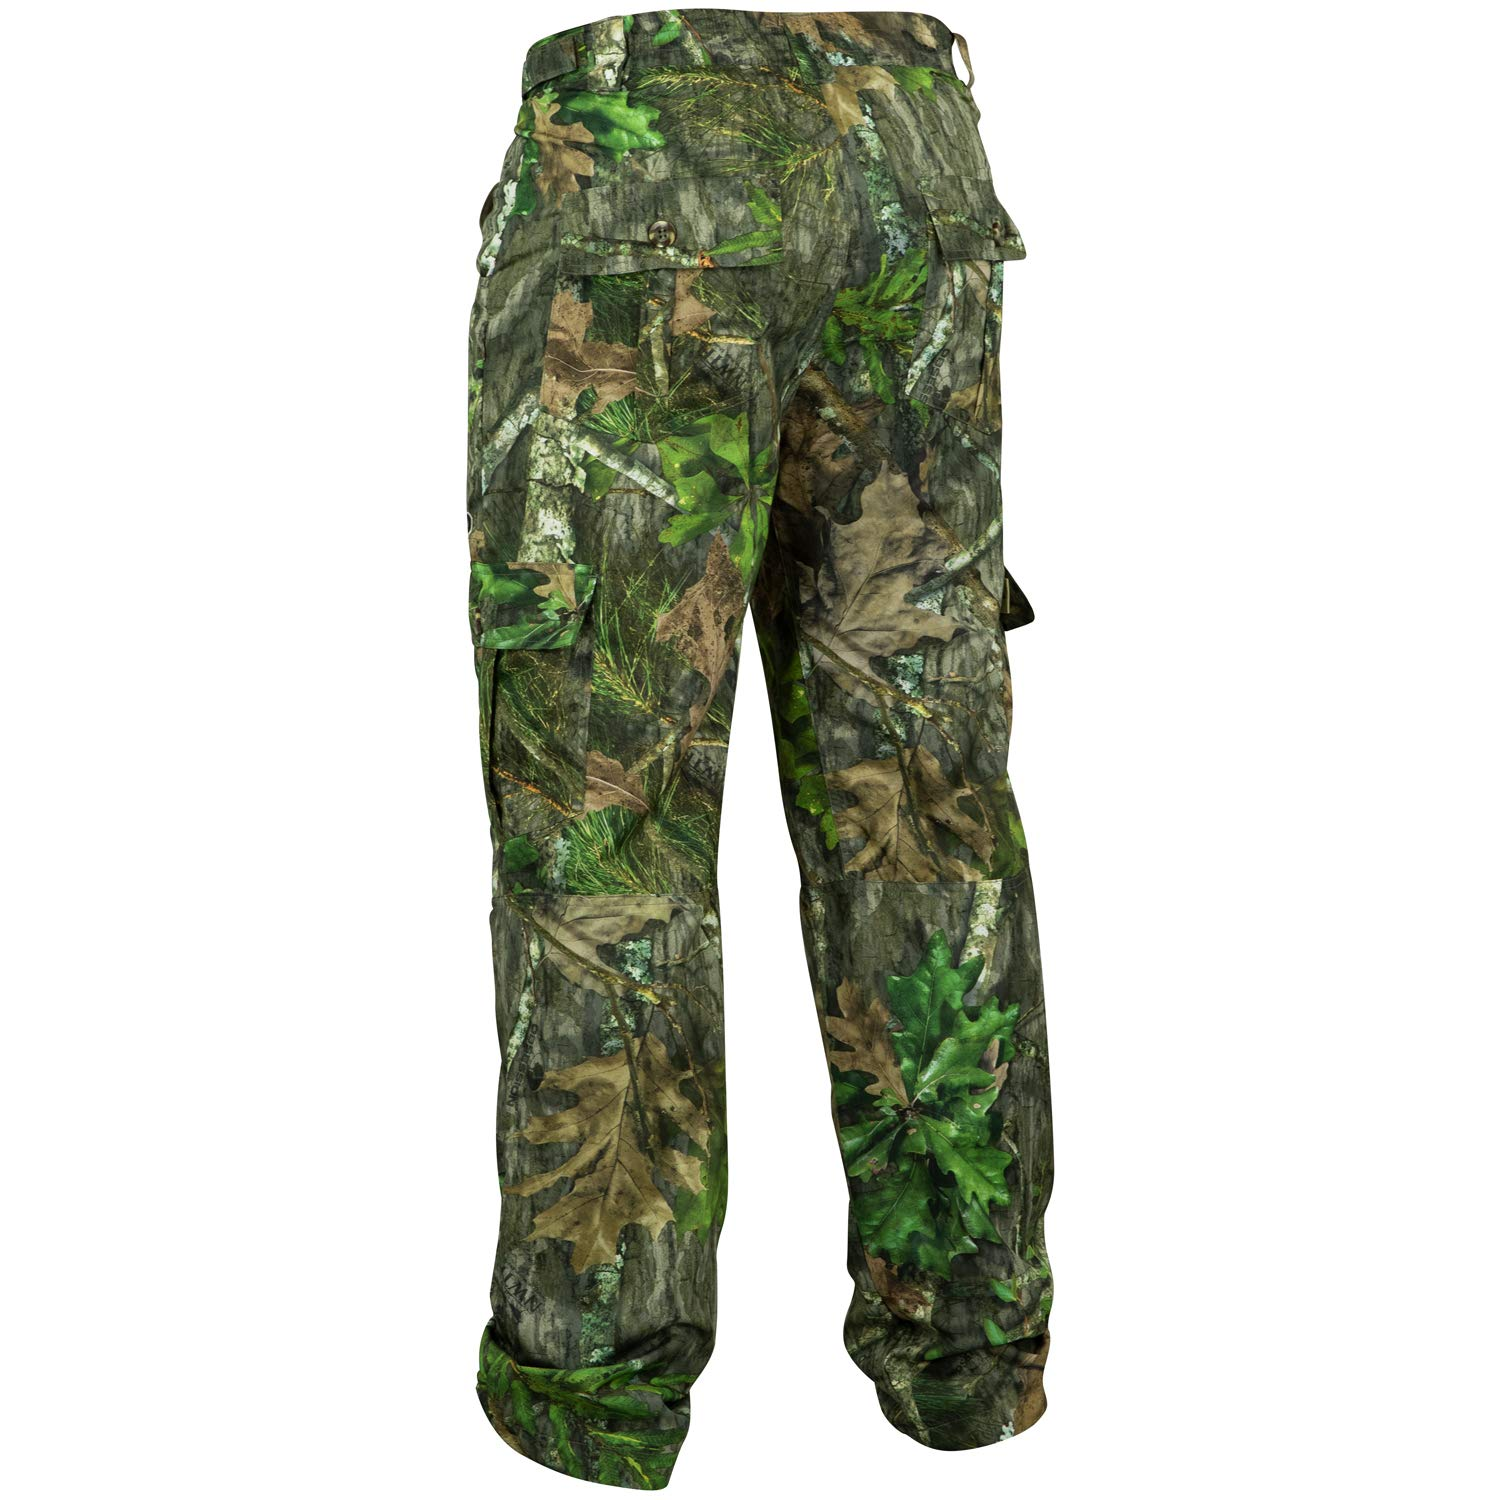 Mossy Oak Men's Tibbee Technical Lightweight Camo Hunting Pants, Obsession, 3X-Large by Mossy Oak (Image #2)